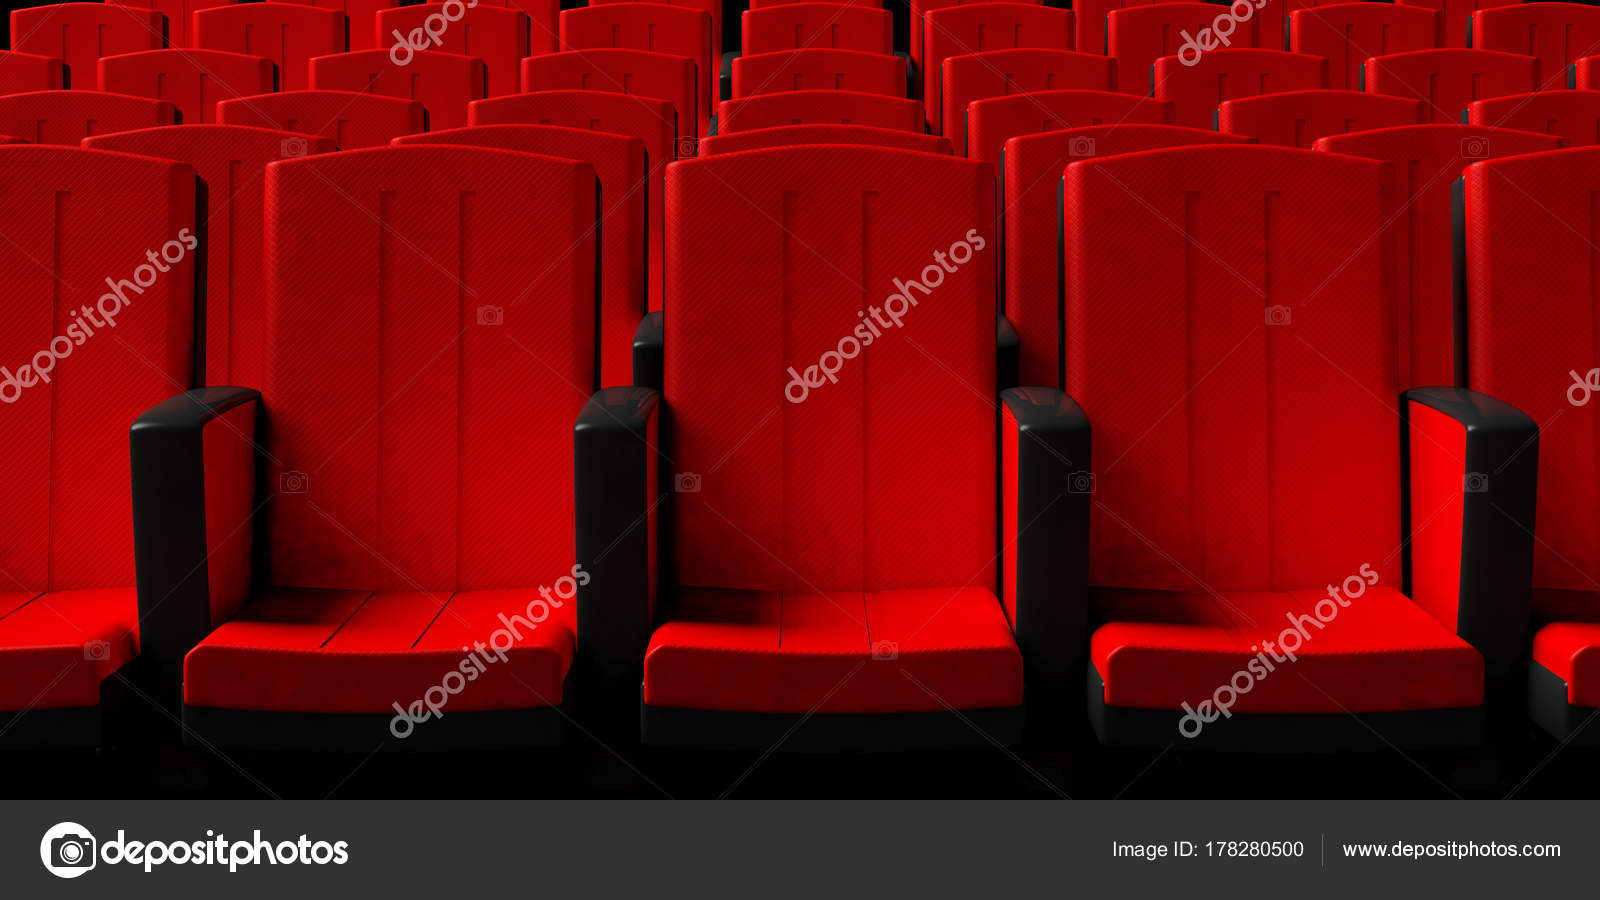 Picture of: Cinema Chairs Background Front View 3d Illustration Stock Photo C Gioiak2 178280500